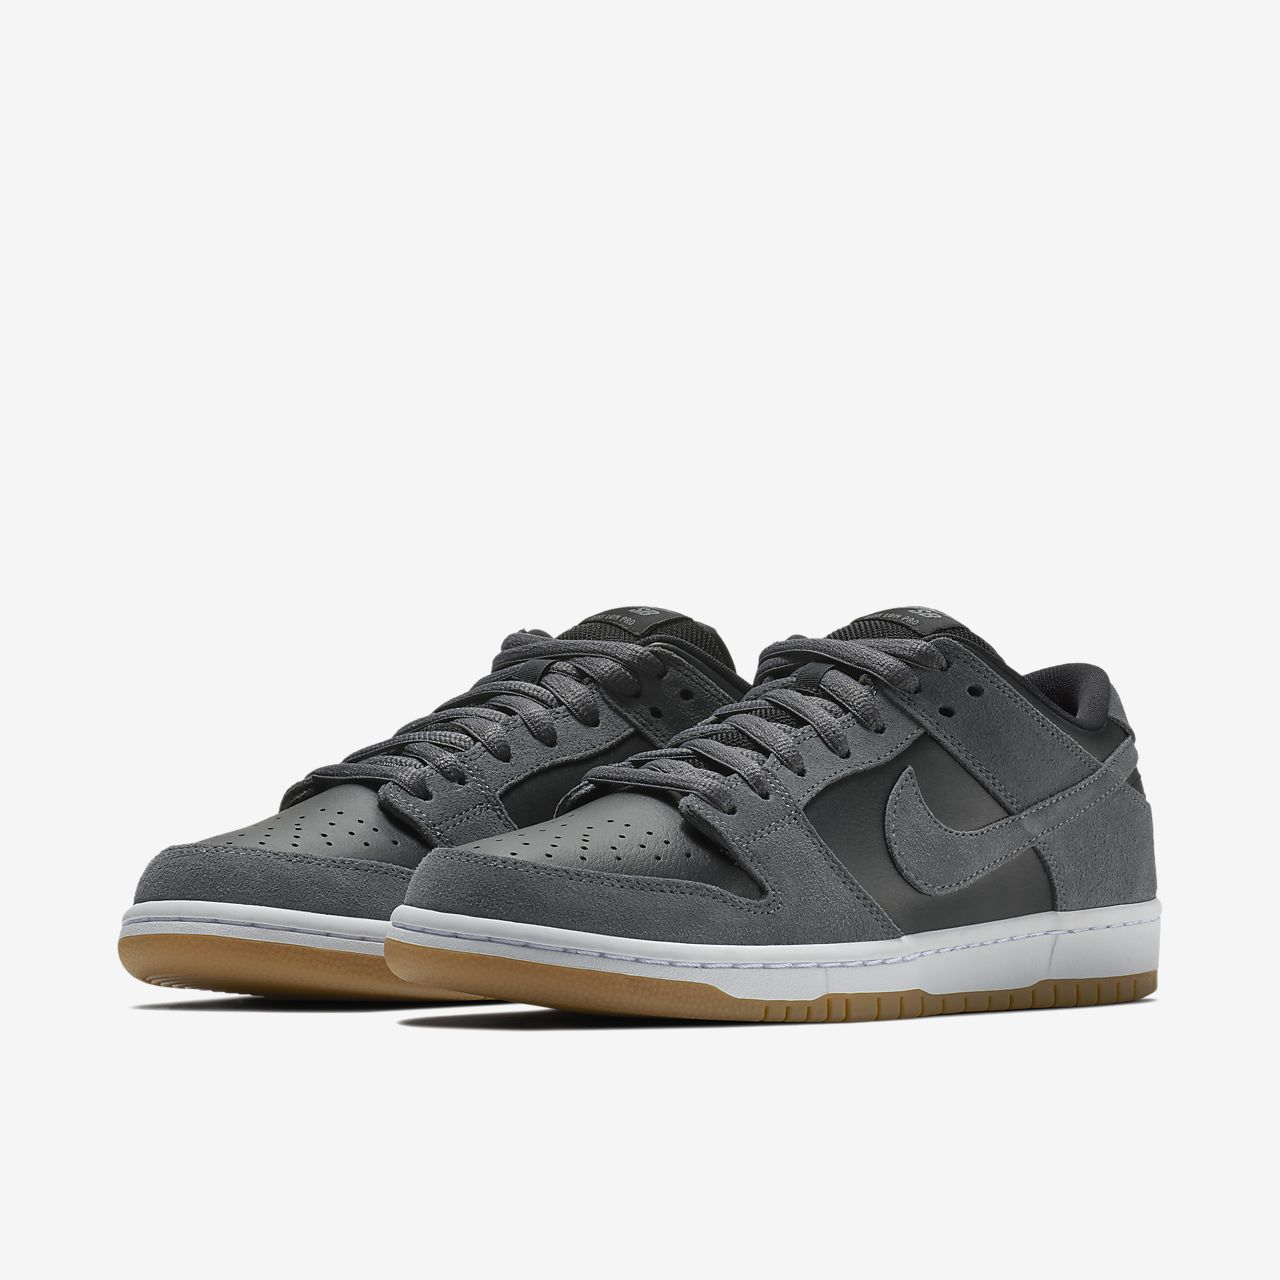 official photos 80ef8 b4070 Nike SB Dunk Low TRD Men's Skateboarding Shoe